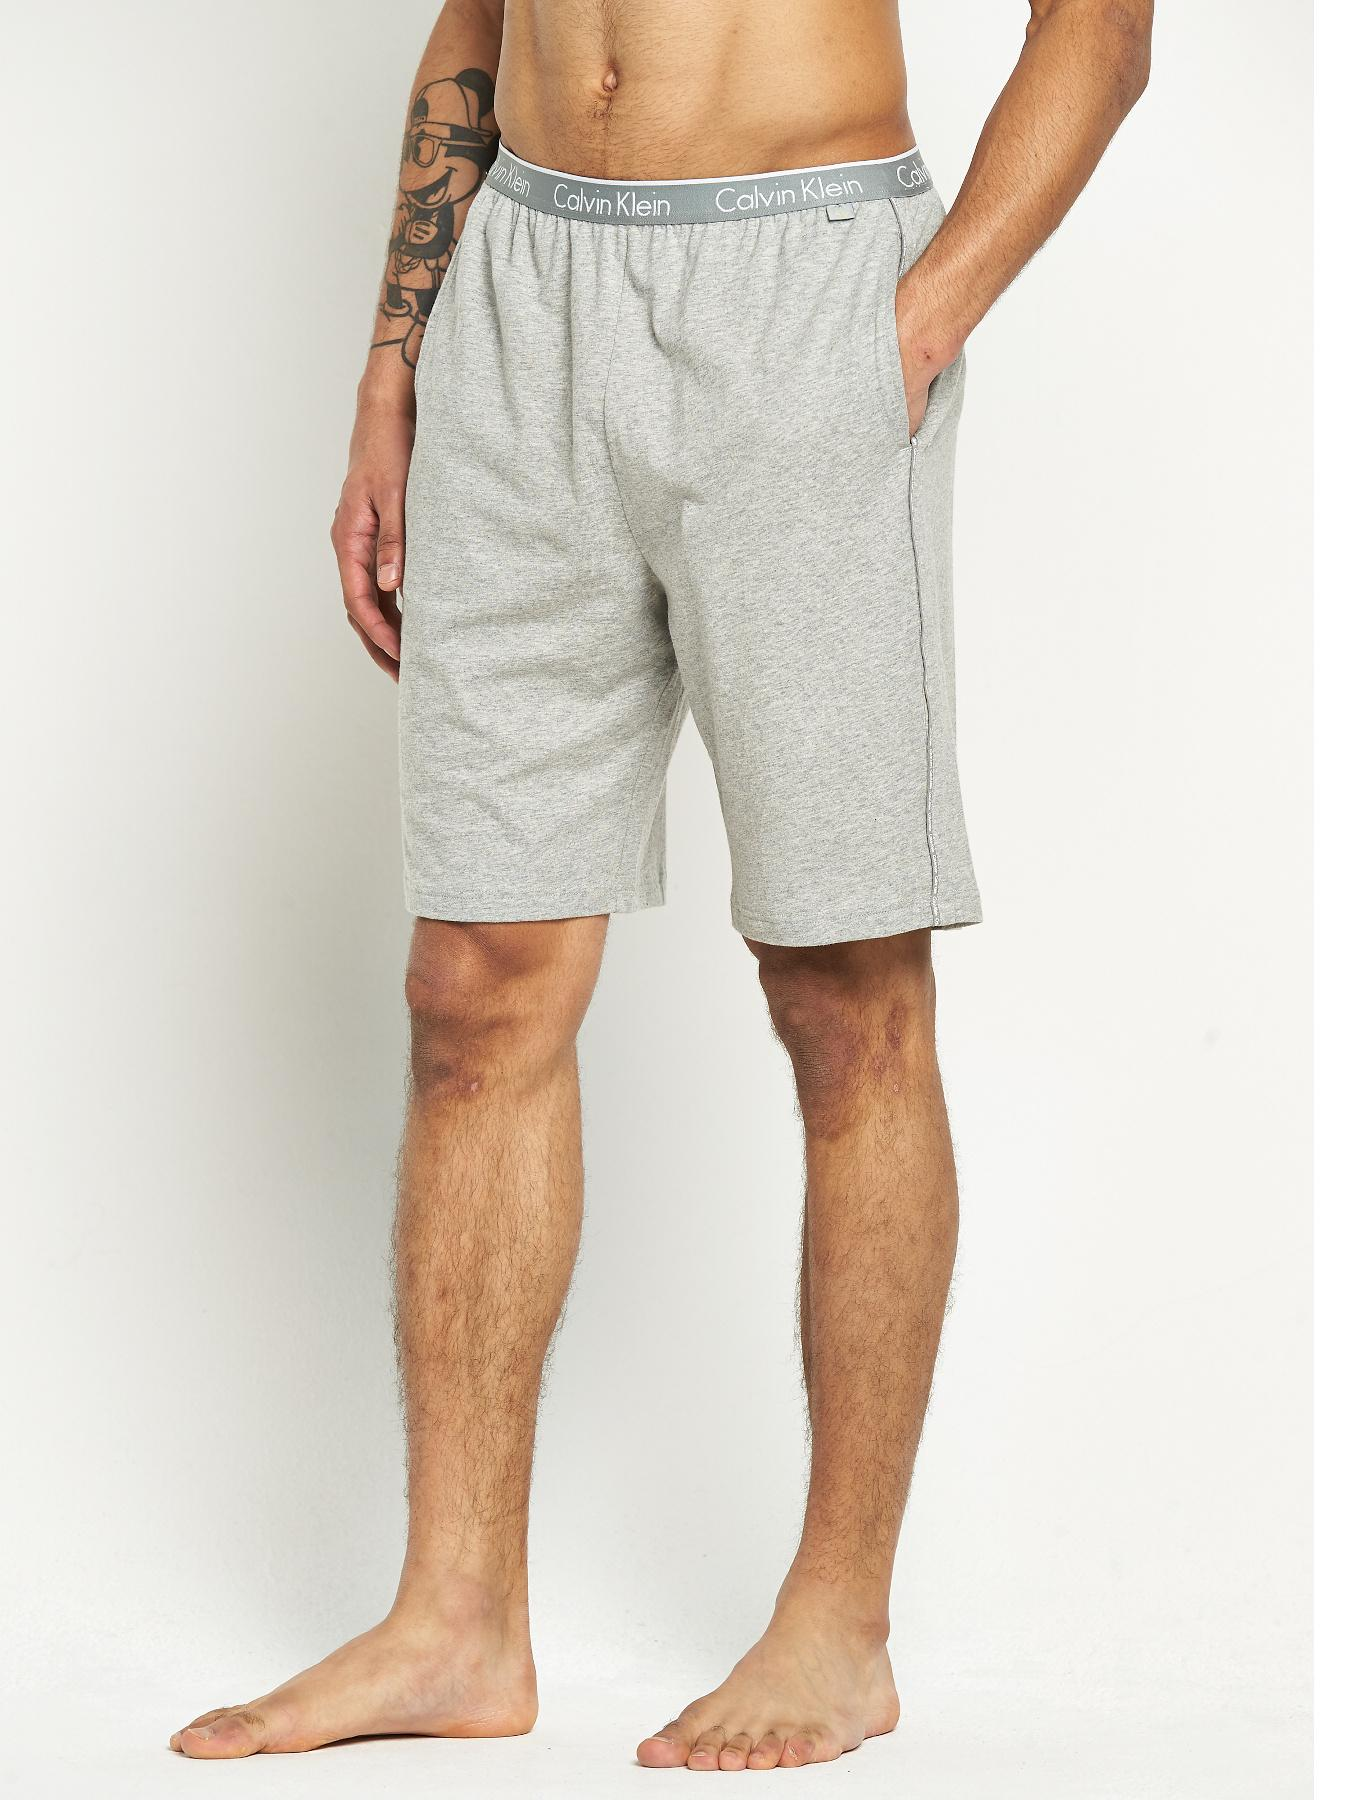 Calvin Klein Mens Lounge Shorts - Grey, Grey